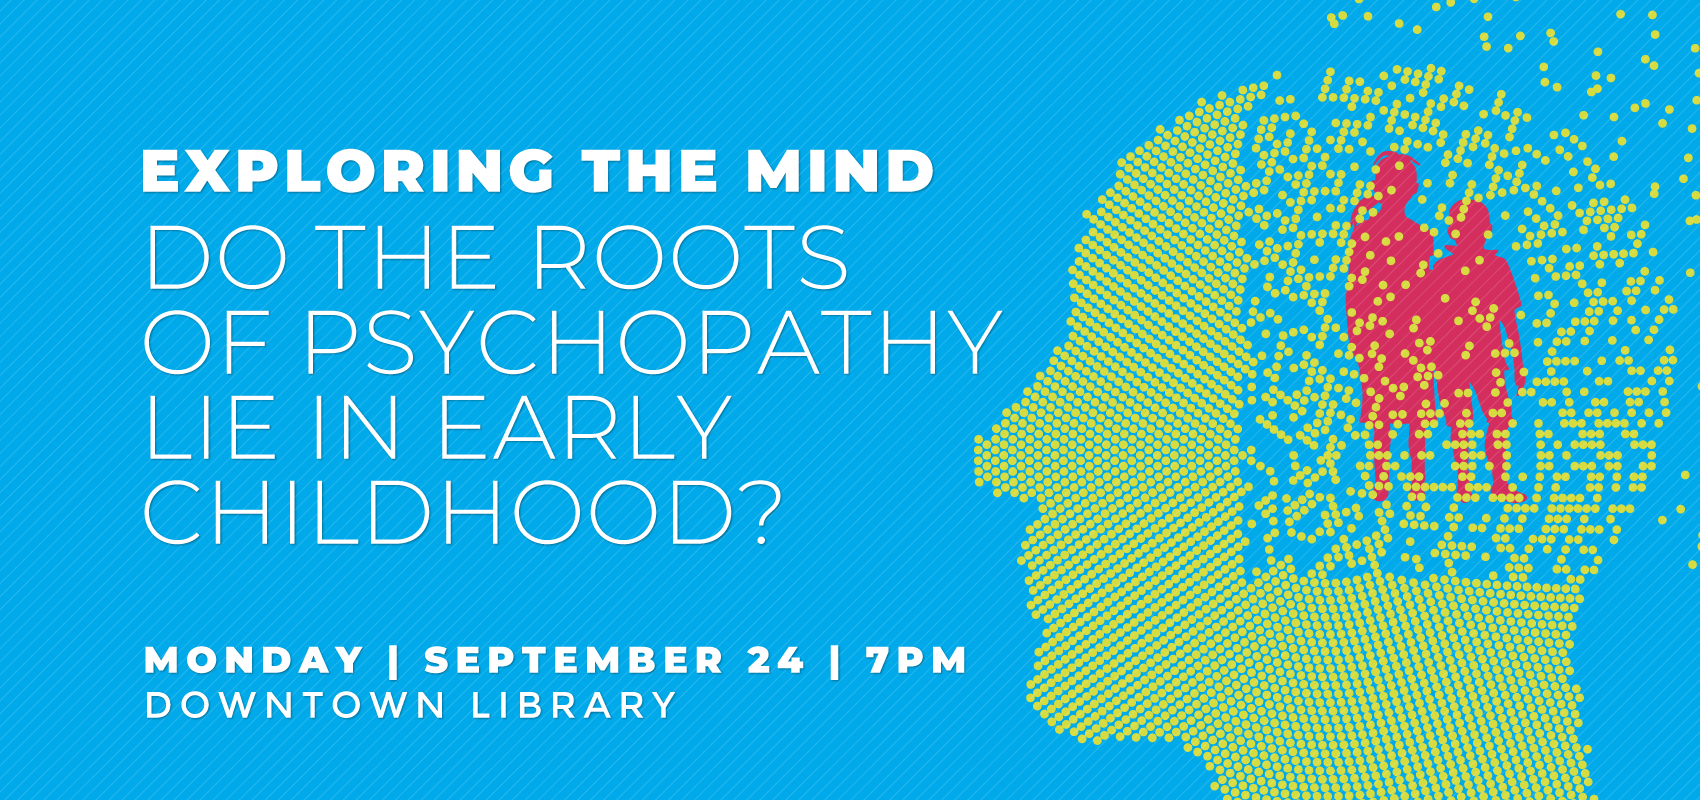 Exploring The Mind - Monday Sept 24. .